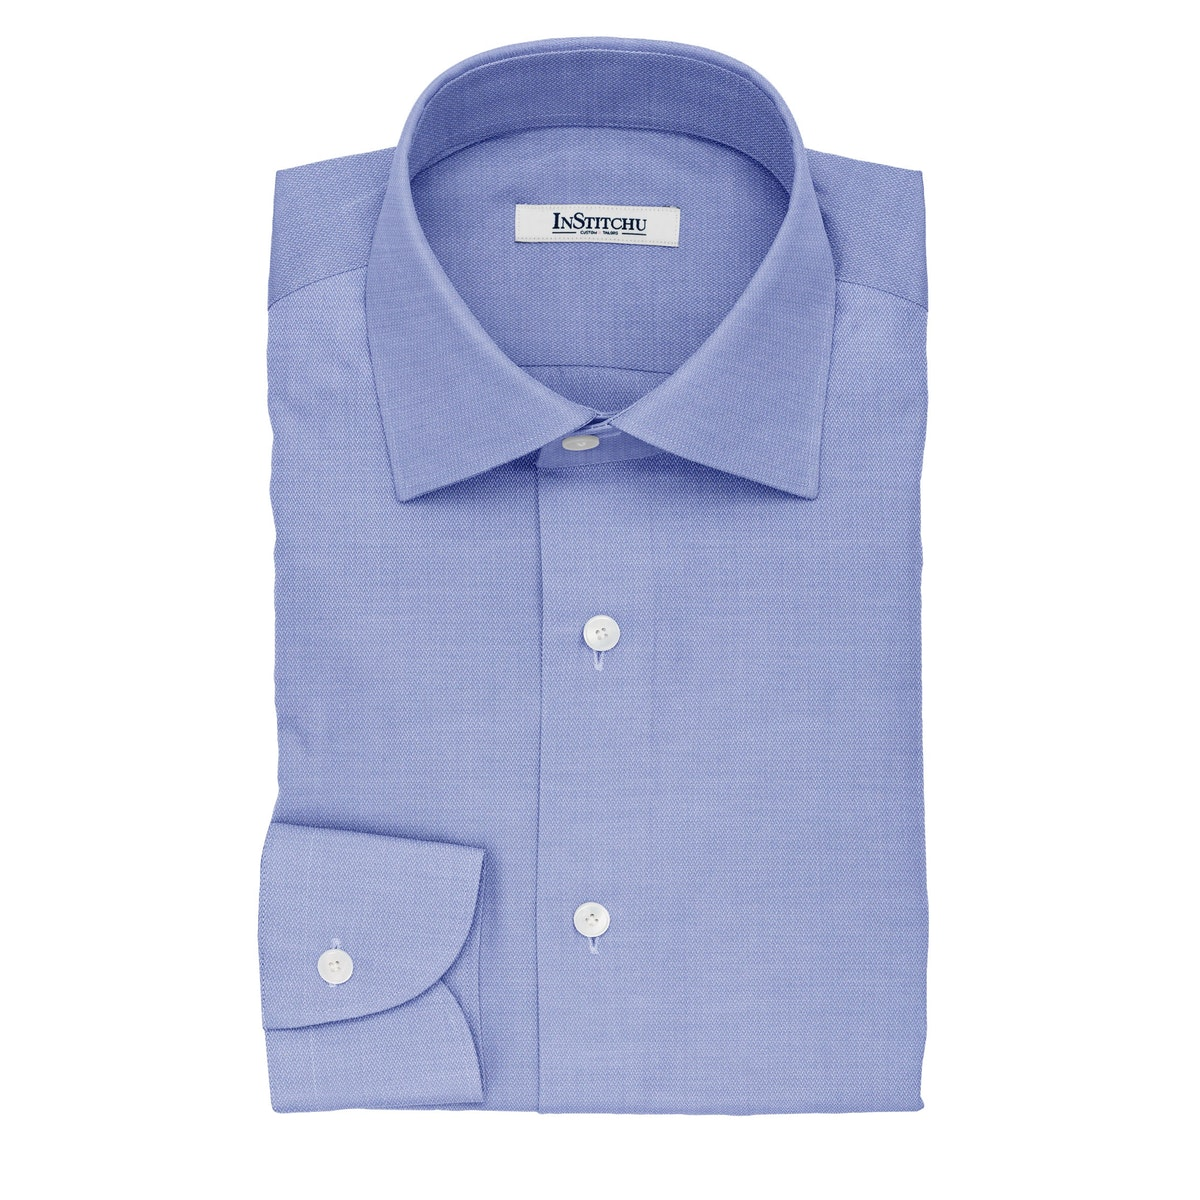 InStitchu Collection The Smith Blue and White Herringbone Cotton Shirt